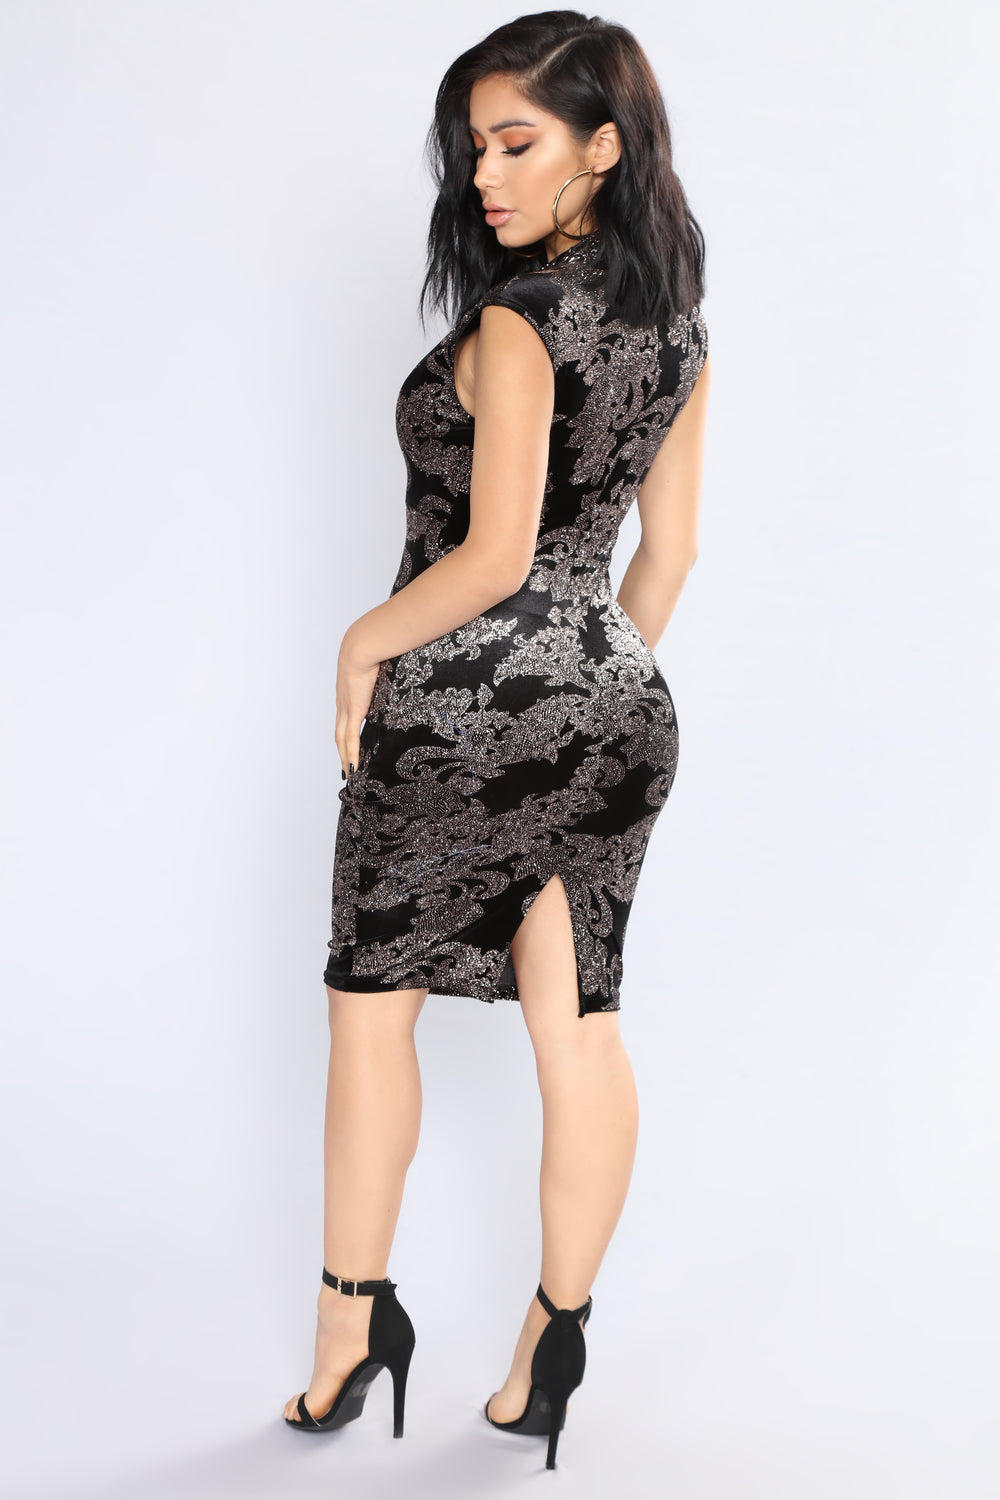 Be My Music Velvet Glitter Dress - Black